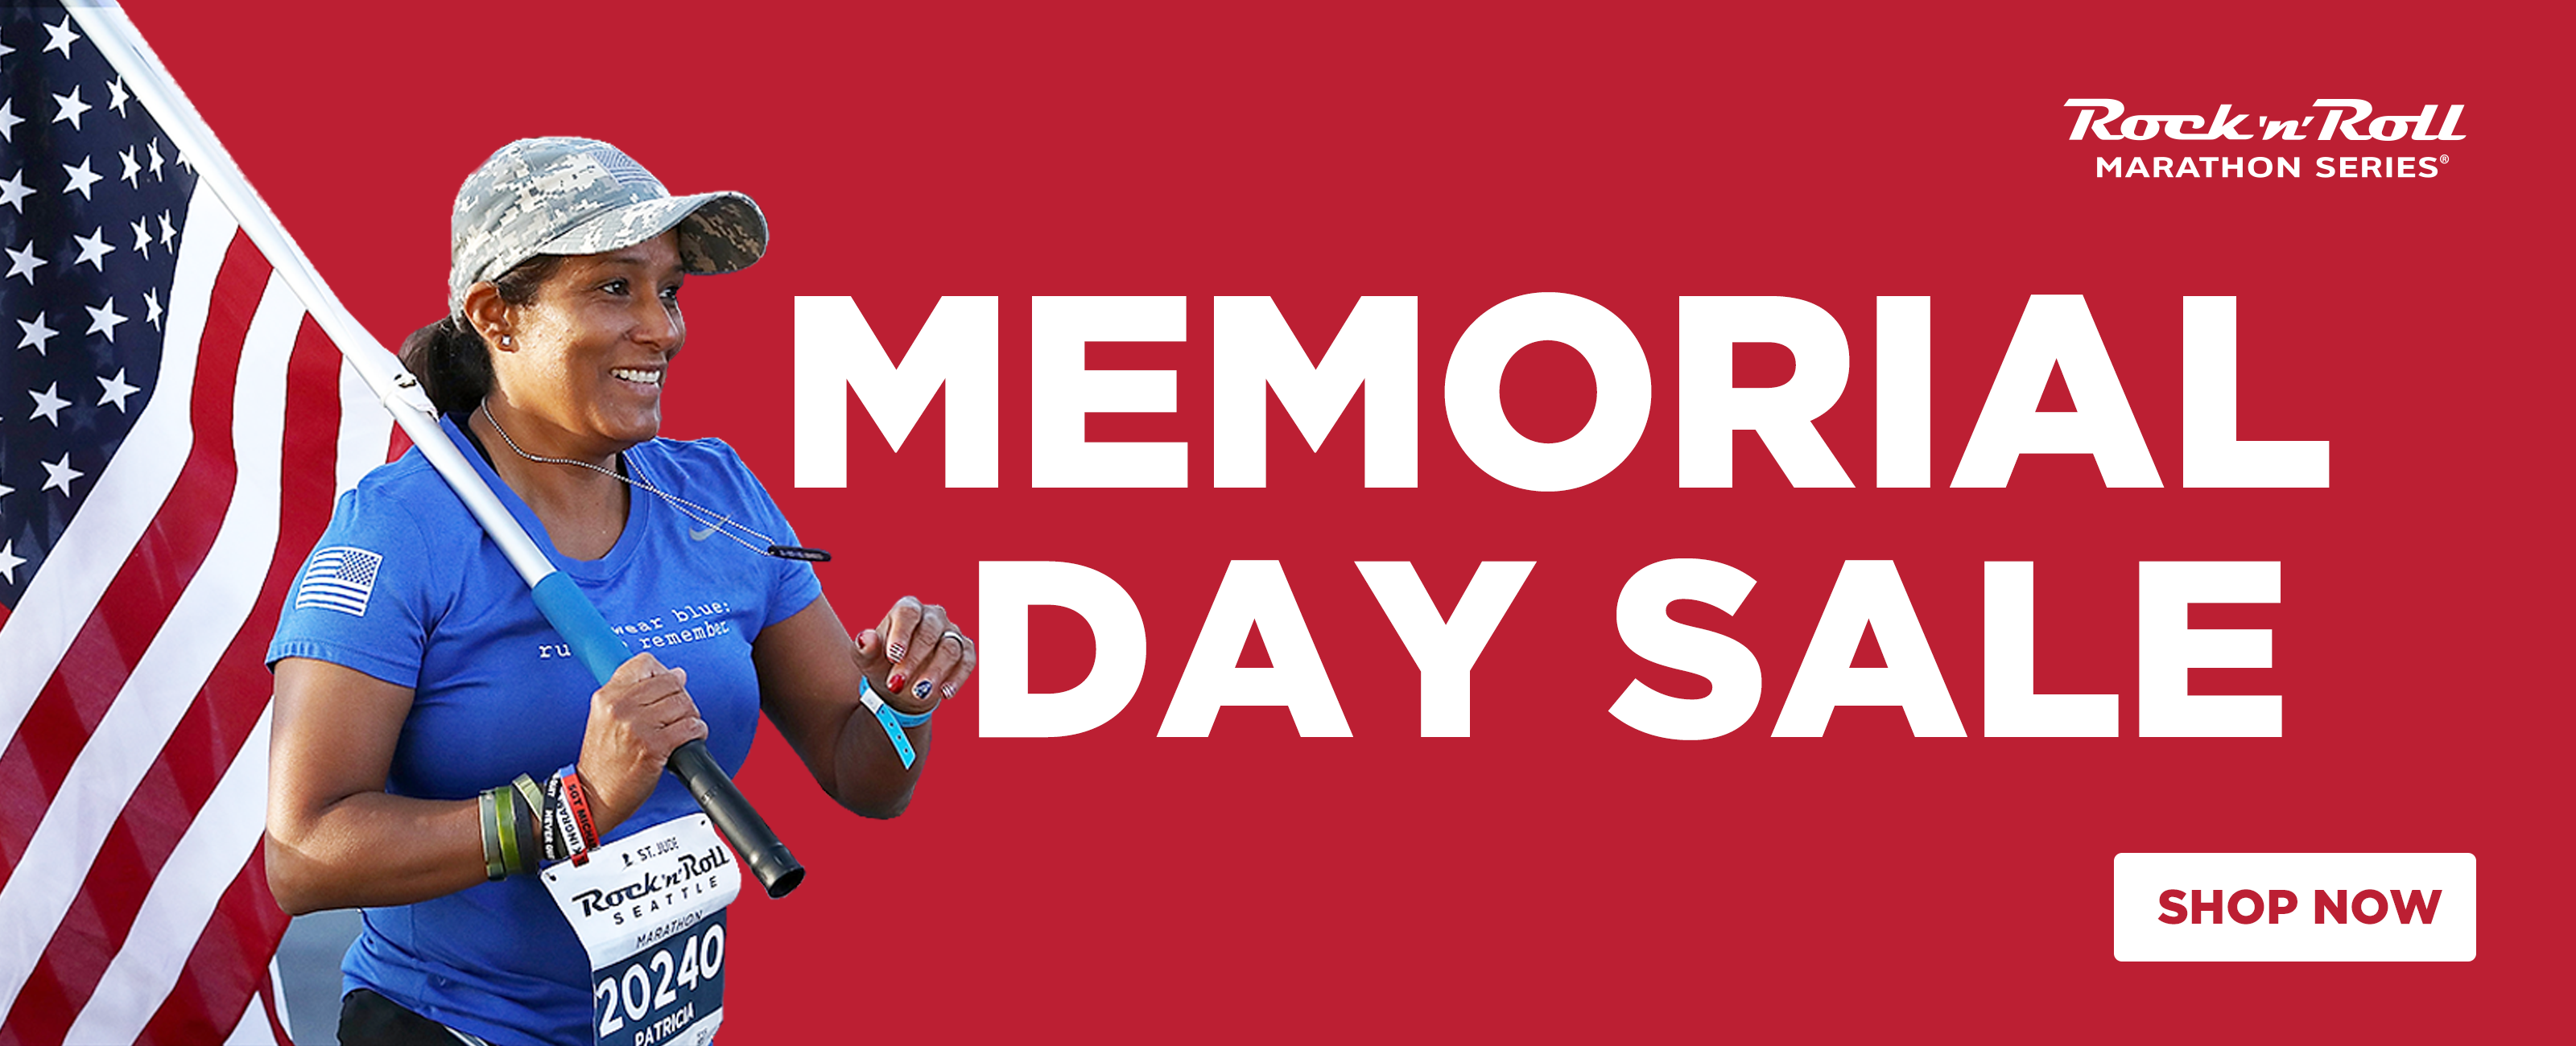 ROCK N ROLL MARATHON SERIES MEMORIAL DAY SAVINGS UP TO 50% OFF